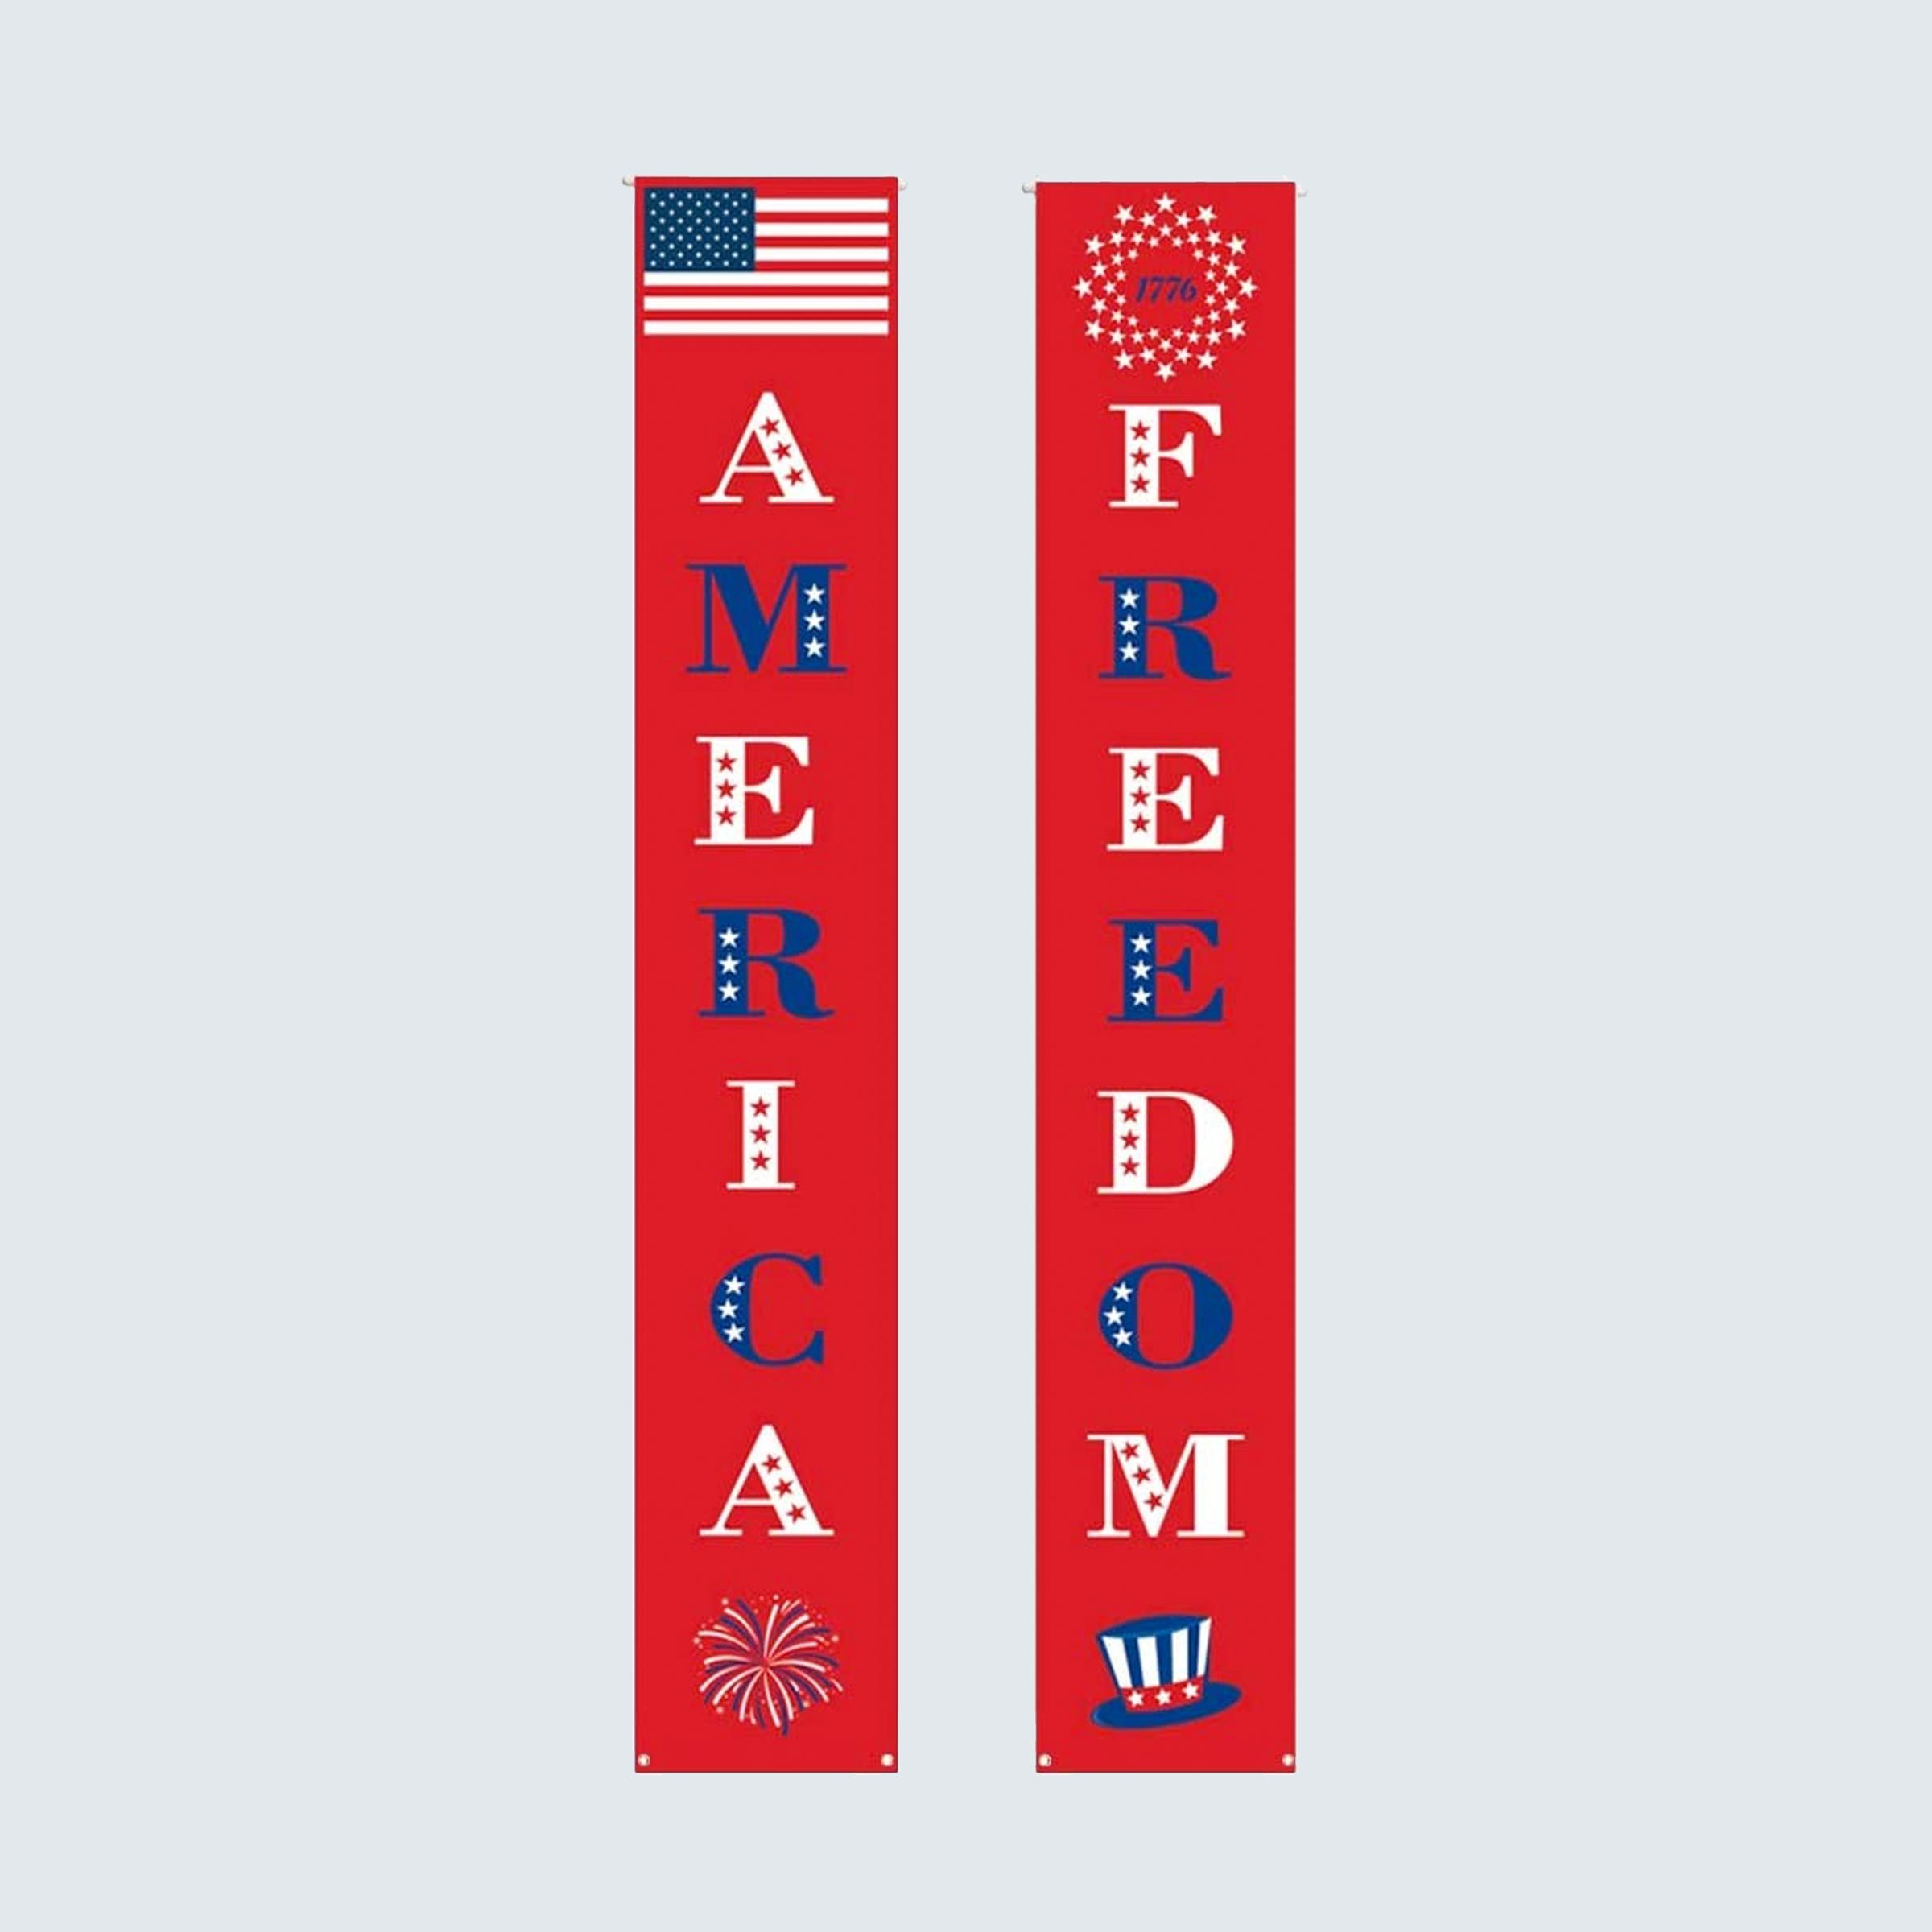 Fourth of July hanging banners